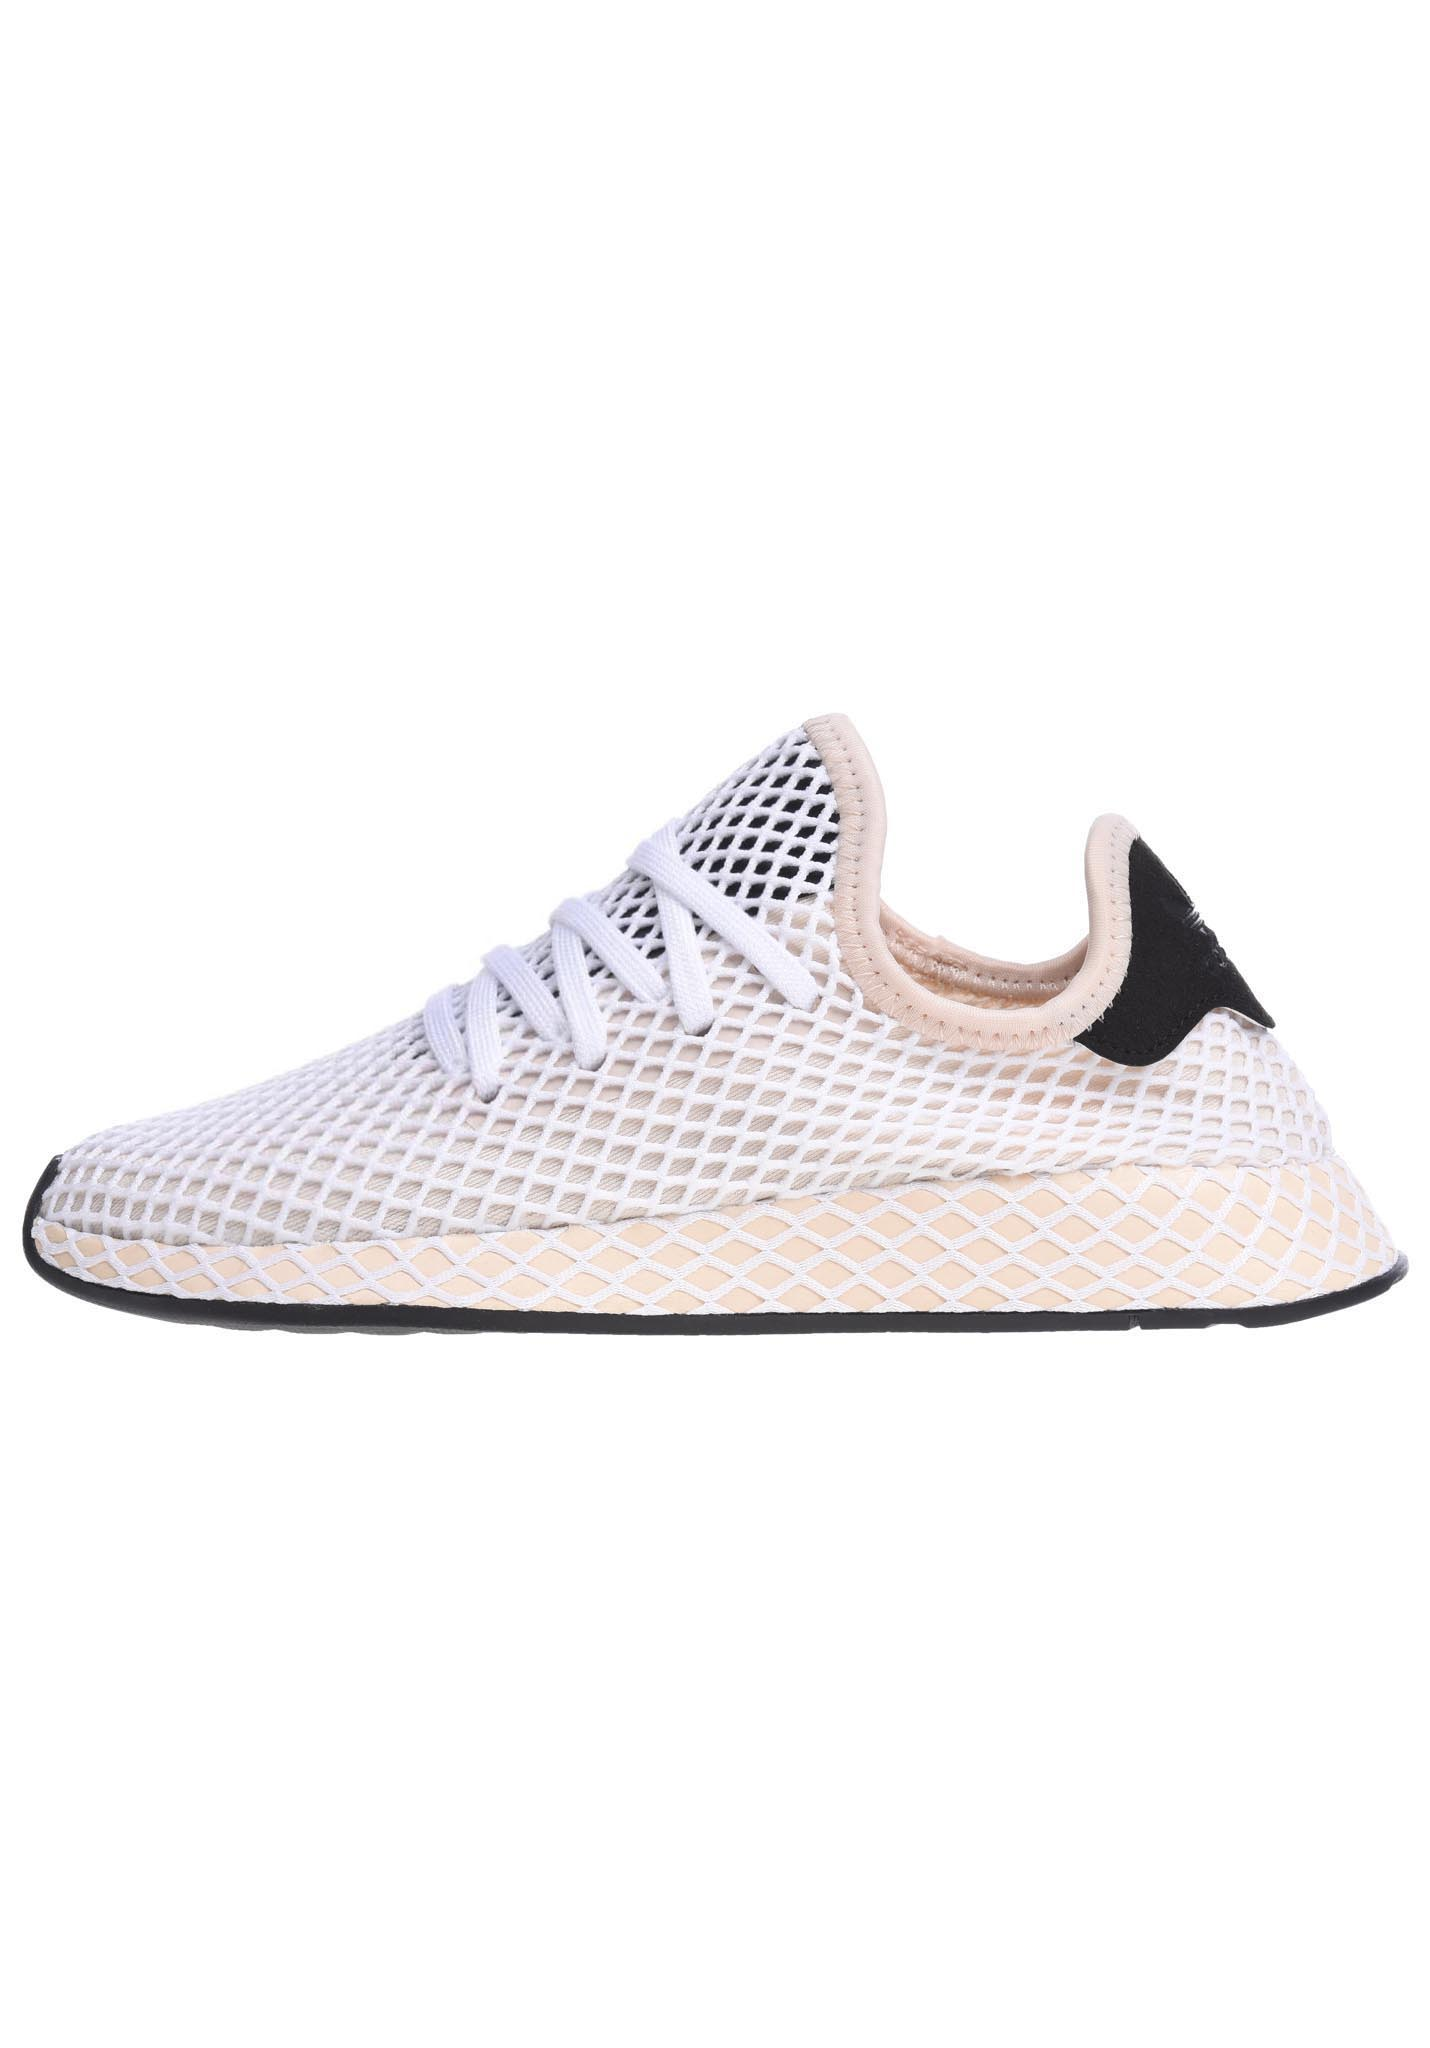 brand new 6c911 d3763 ADIDAS ORIGINALS Deerupt Runner - Sneakers for Women - White